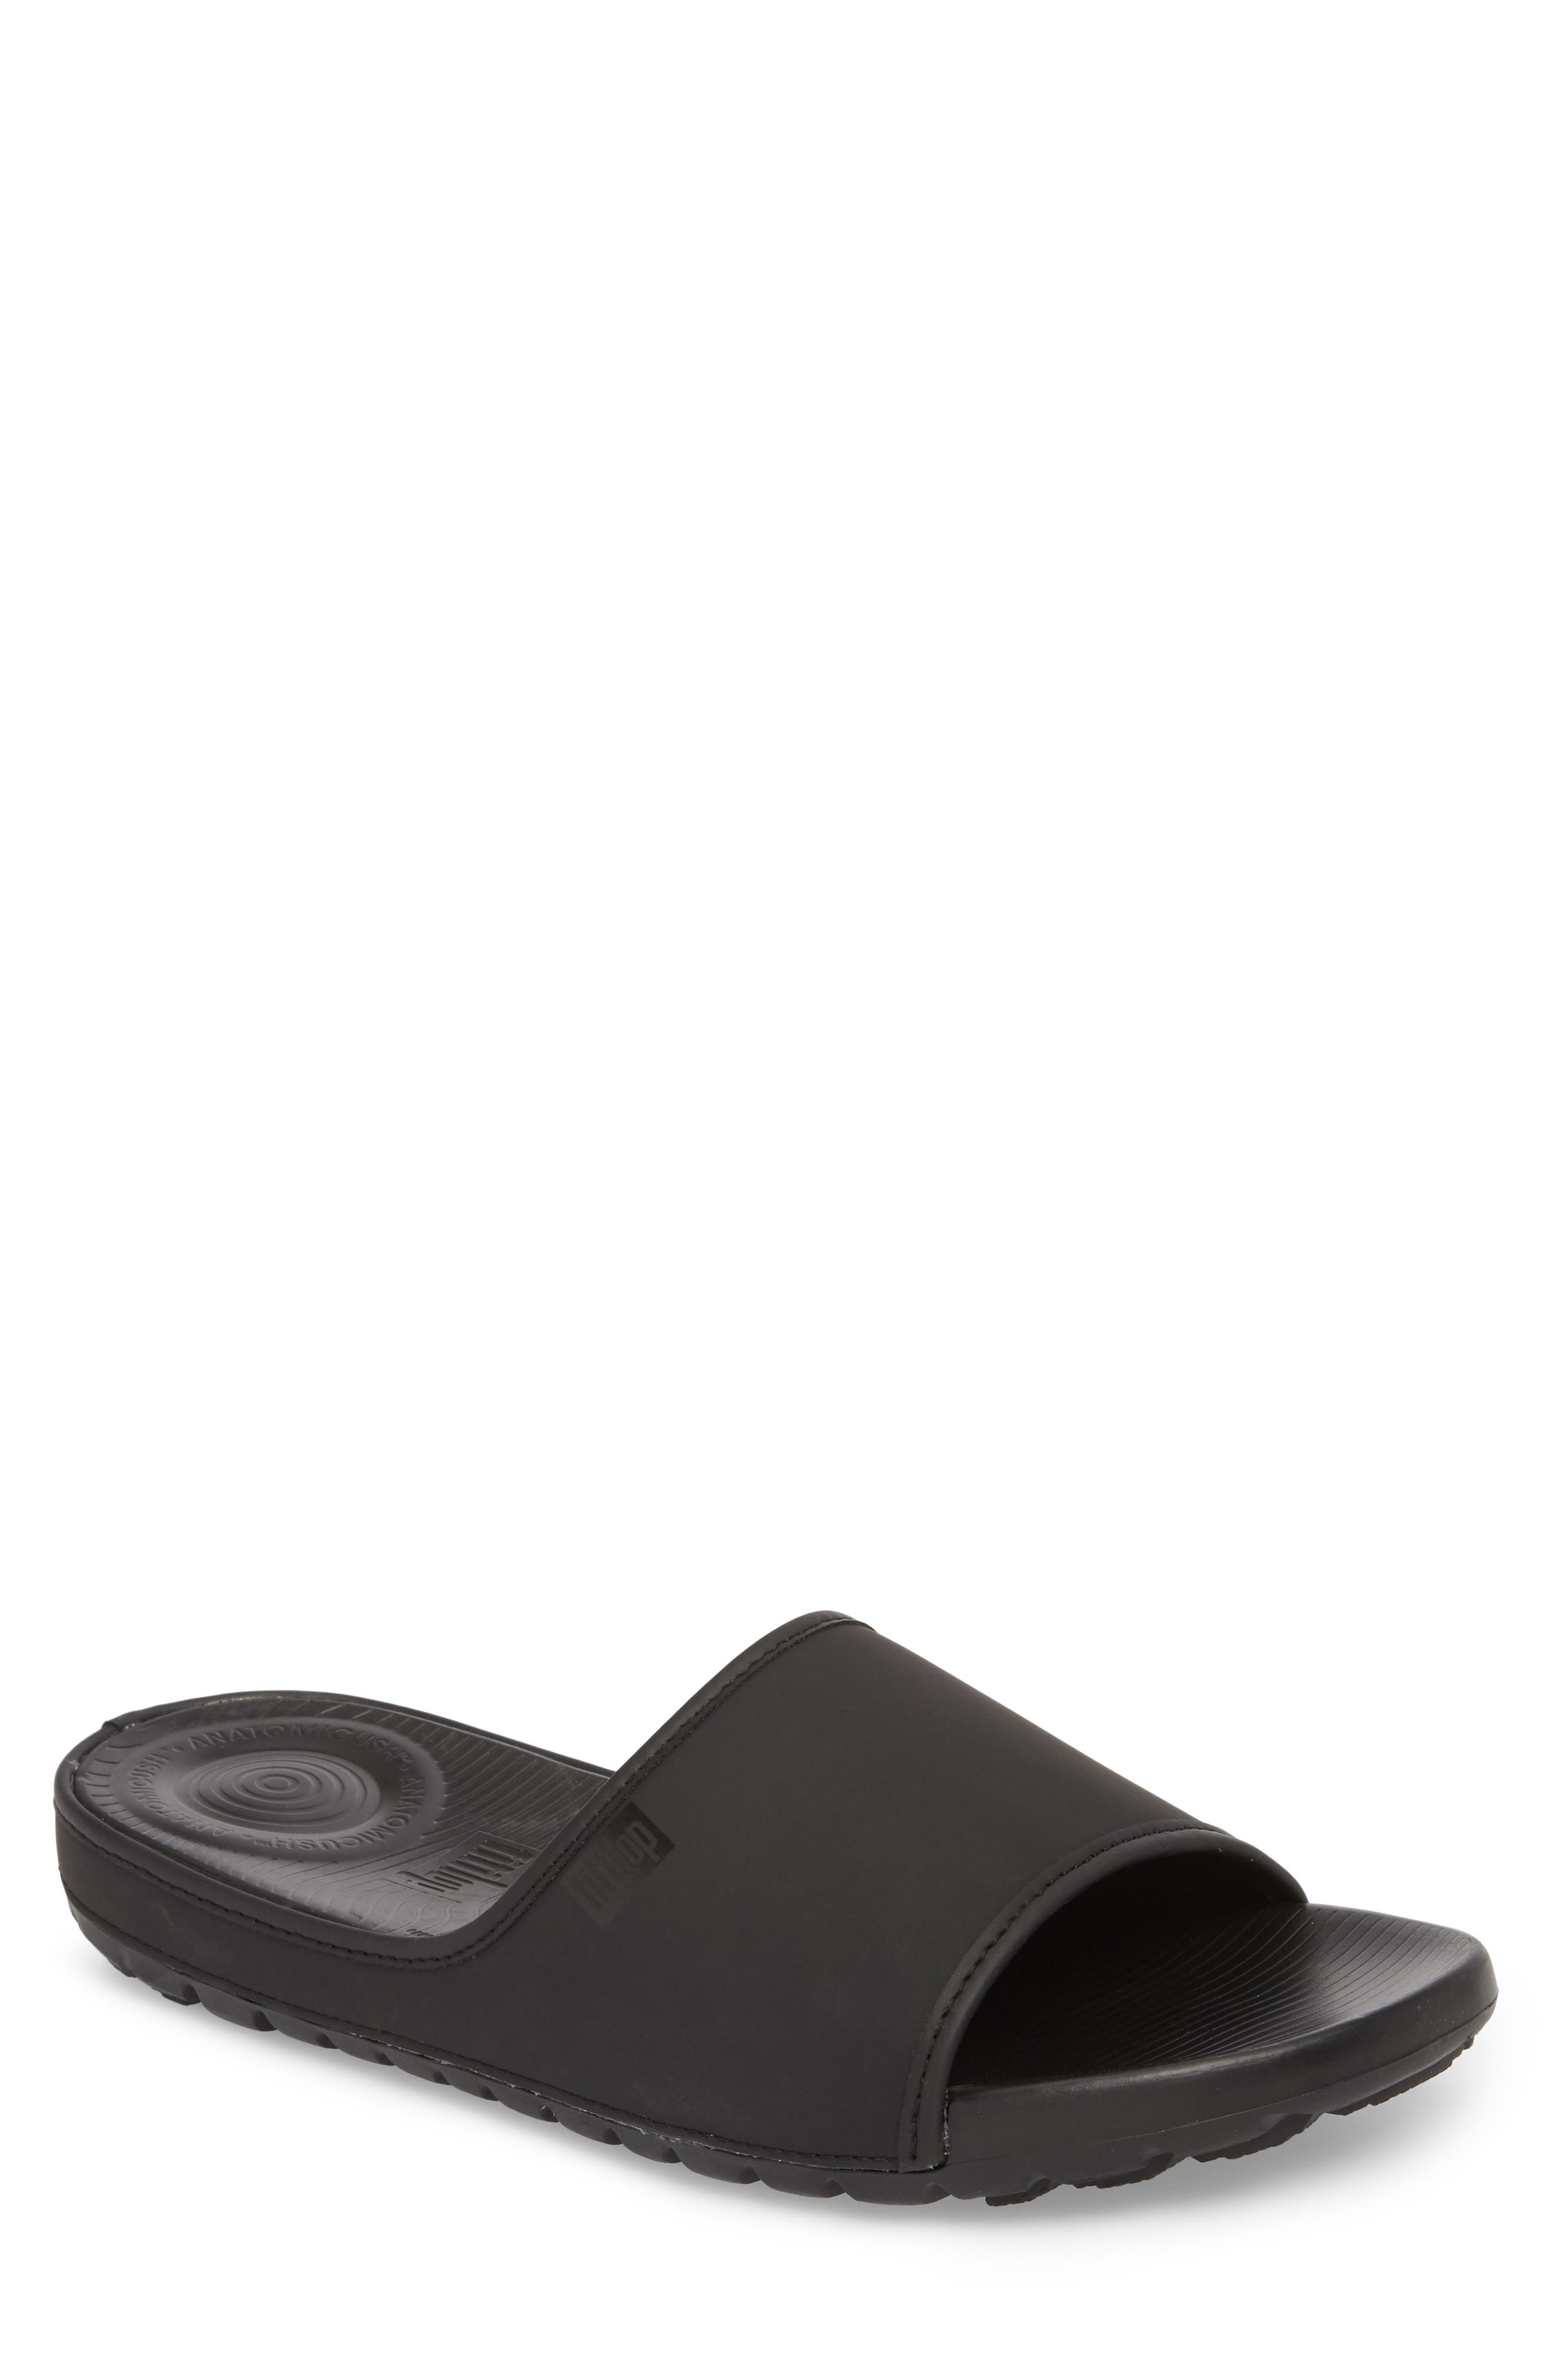 Lido Sport Slide,                         Main,                         color, 001